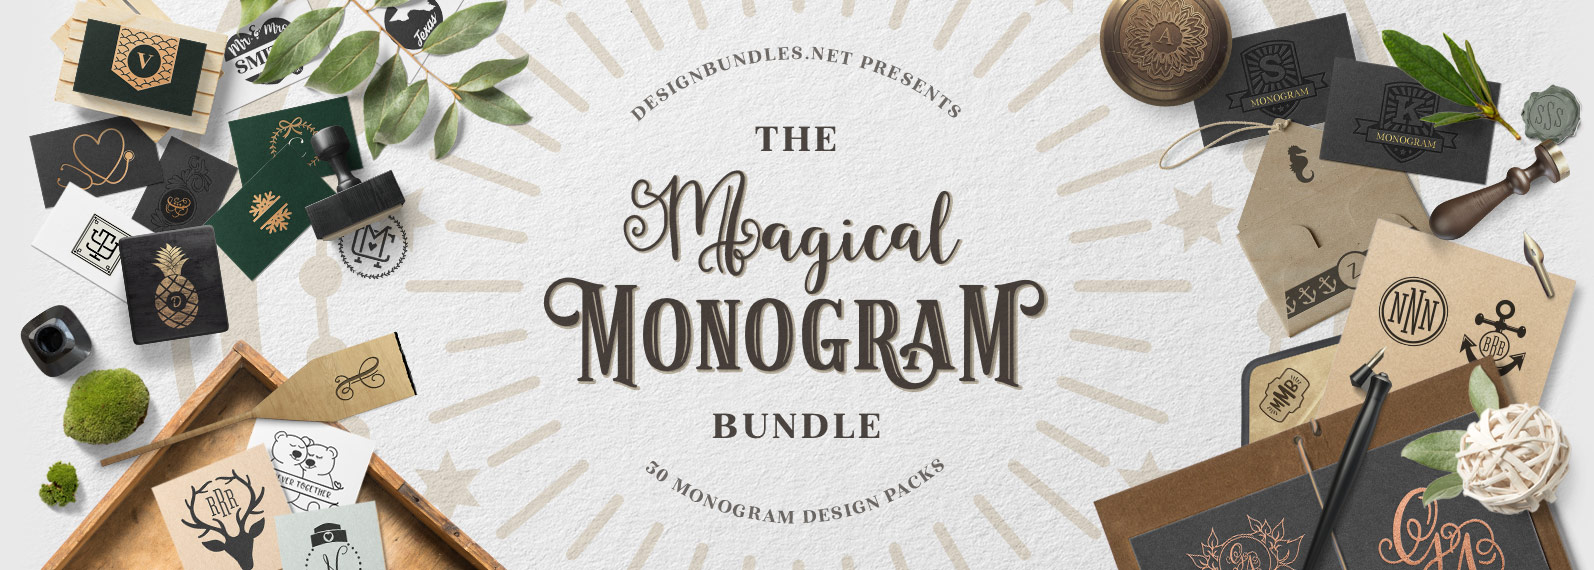 The Magical Monogram Bundle Cover